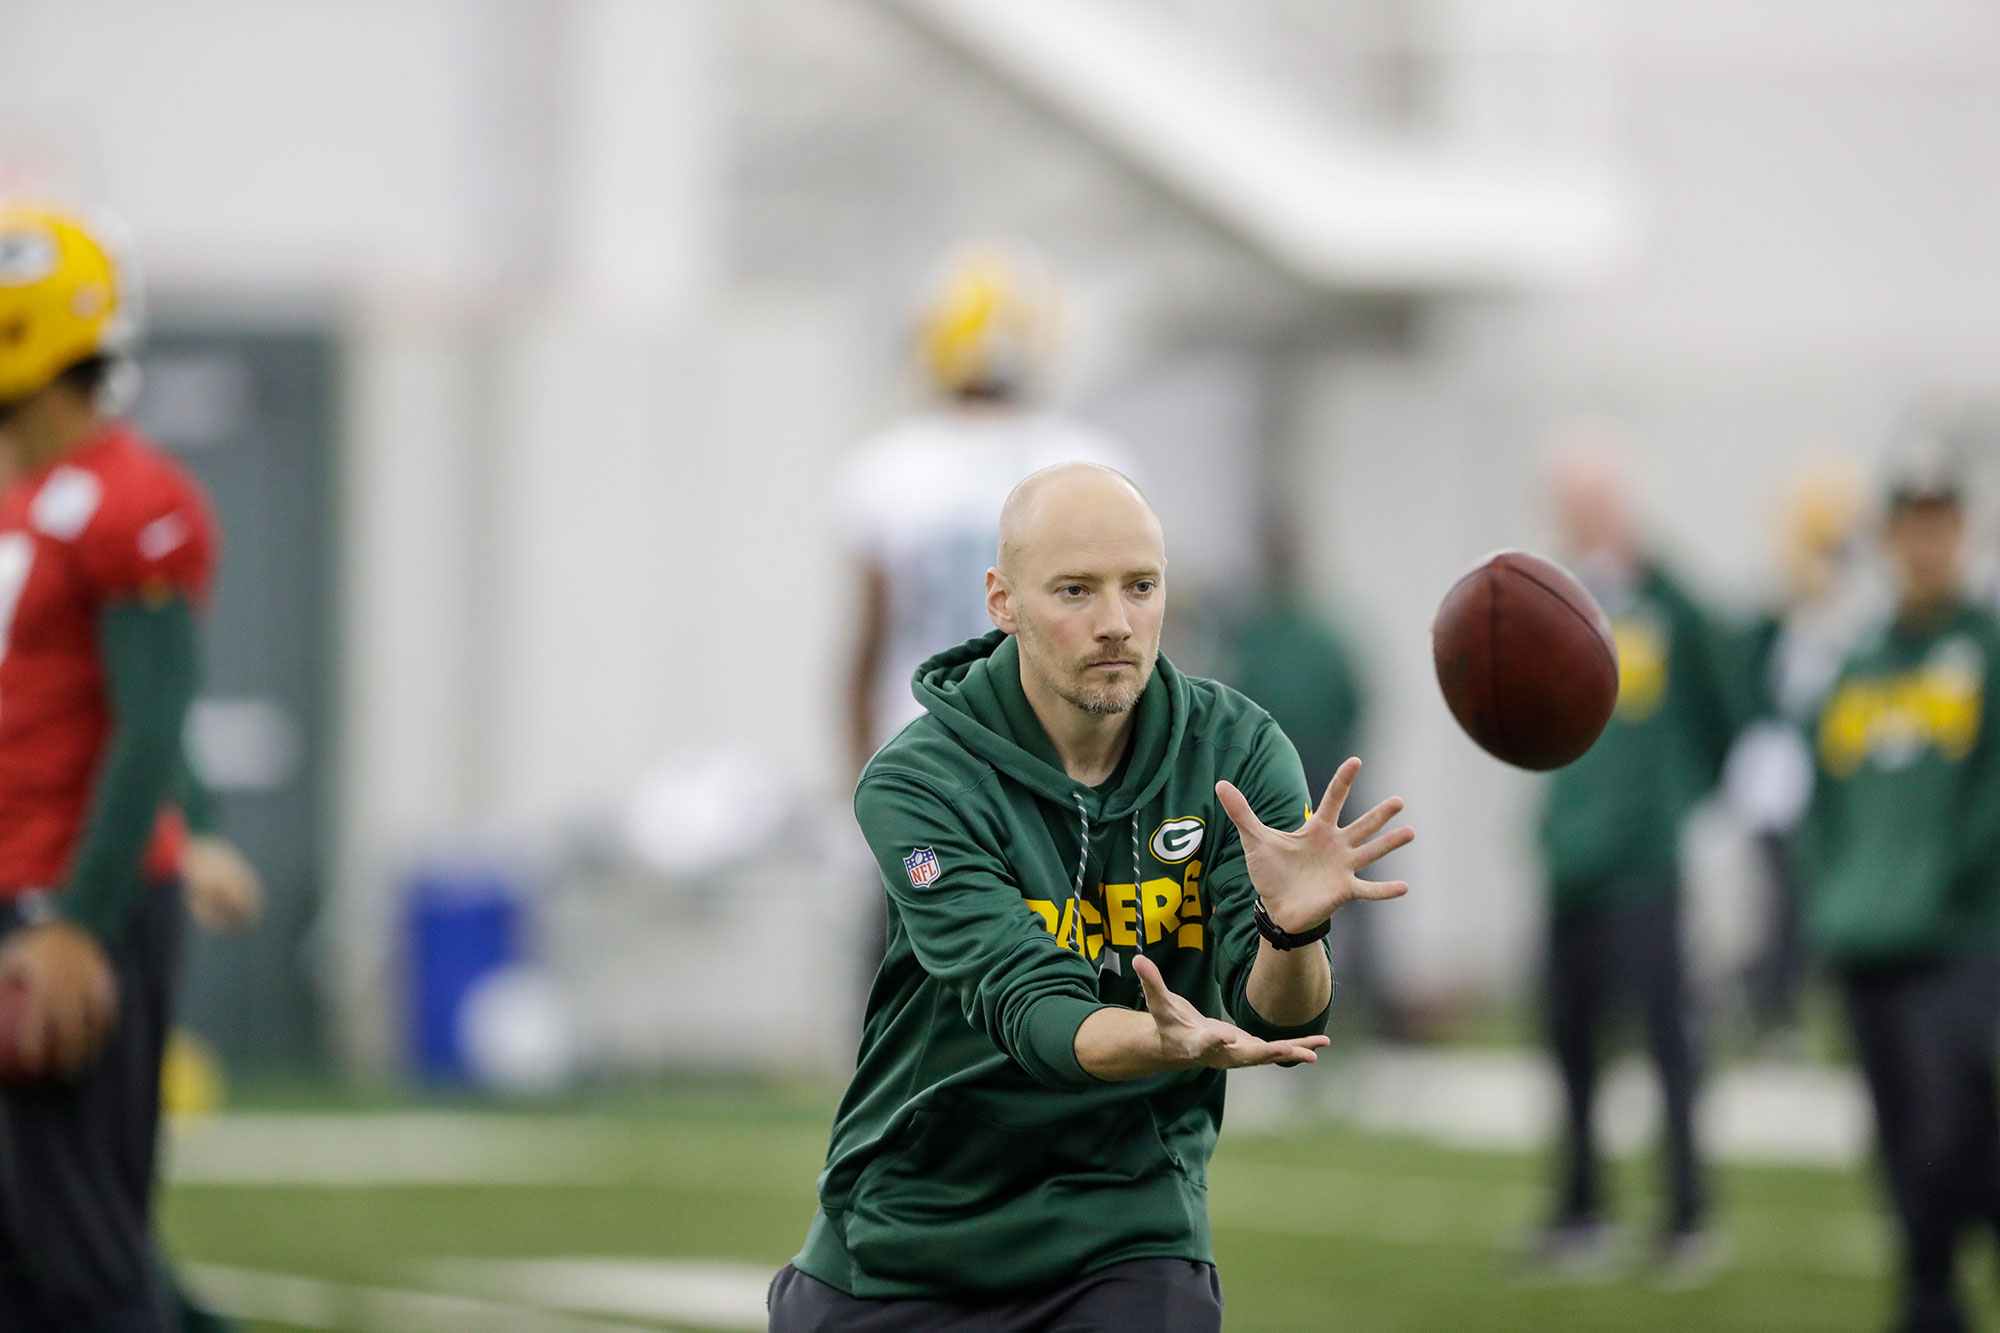 Adam Korzun, director of performance nutrition for the Green Bay Packers, catches a football during a Packers practice.